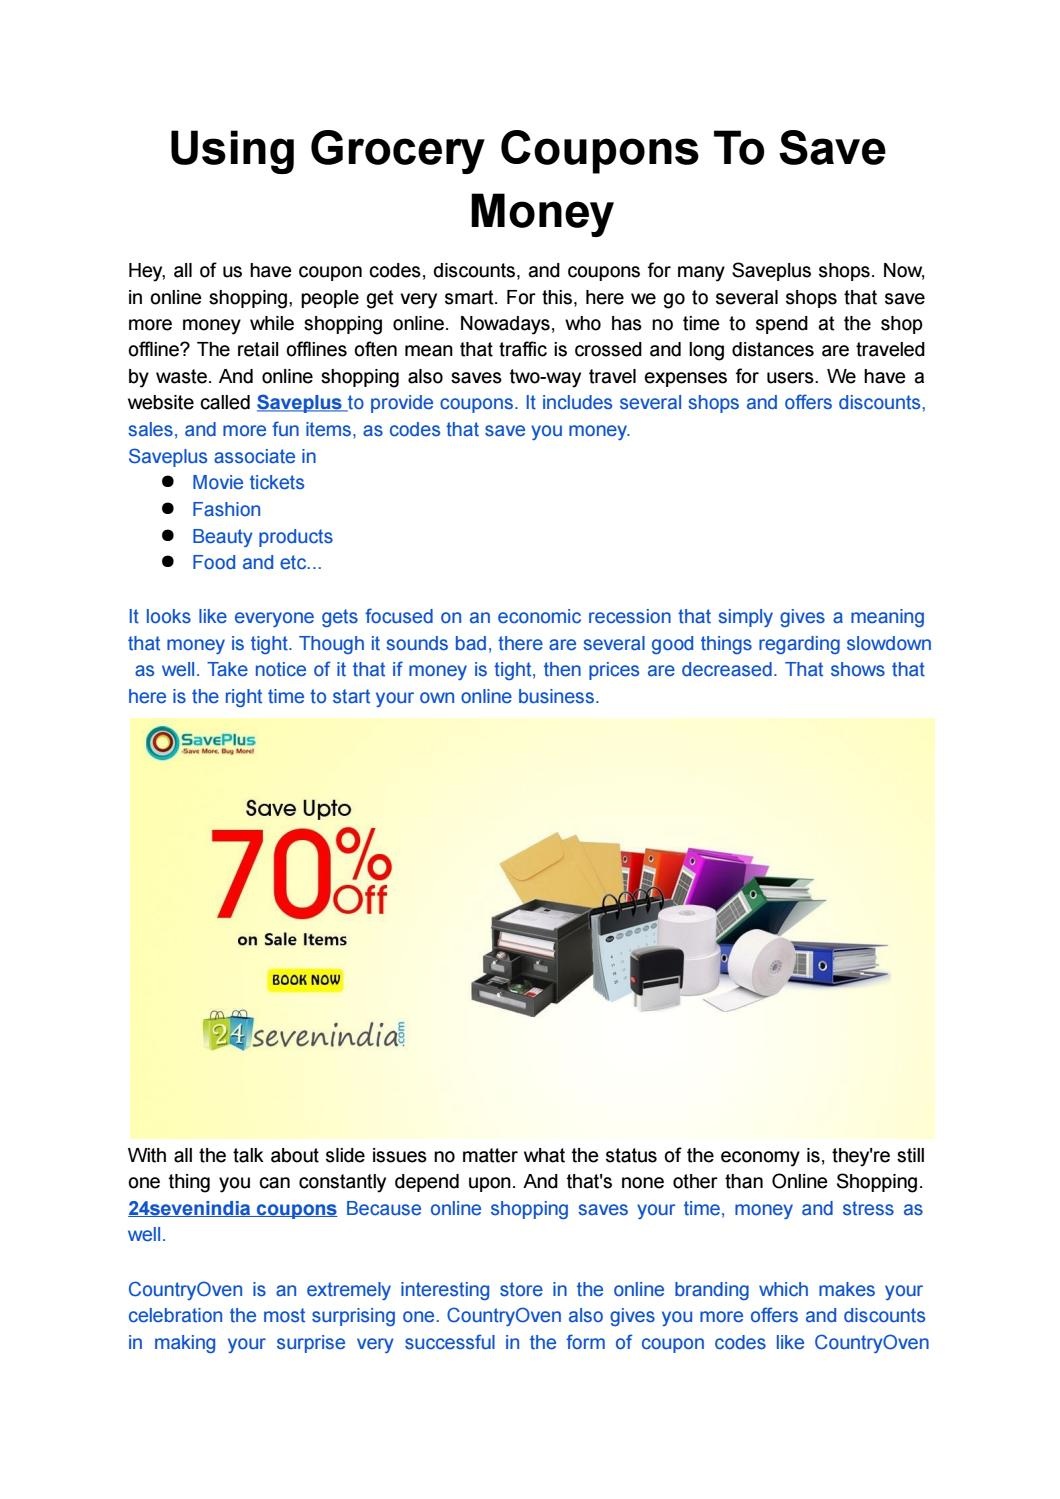 Using Grocery Coupons To Save Money By Saveplus Coupons Issuu